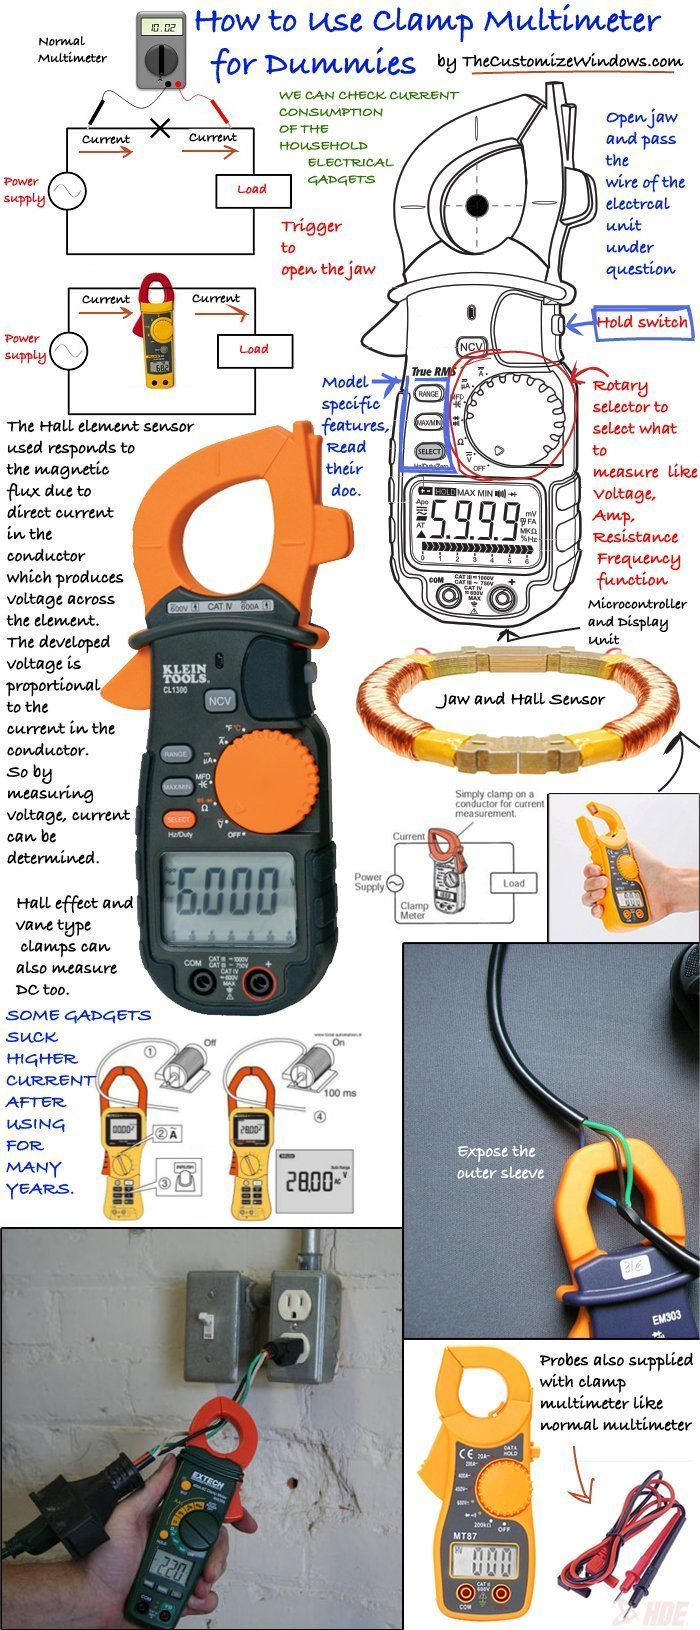 Clamp Multimeter How To Use For Dummies Is An Illustrated